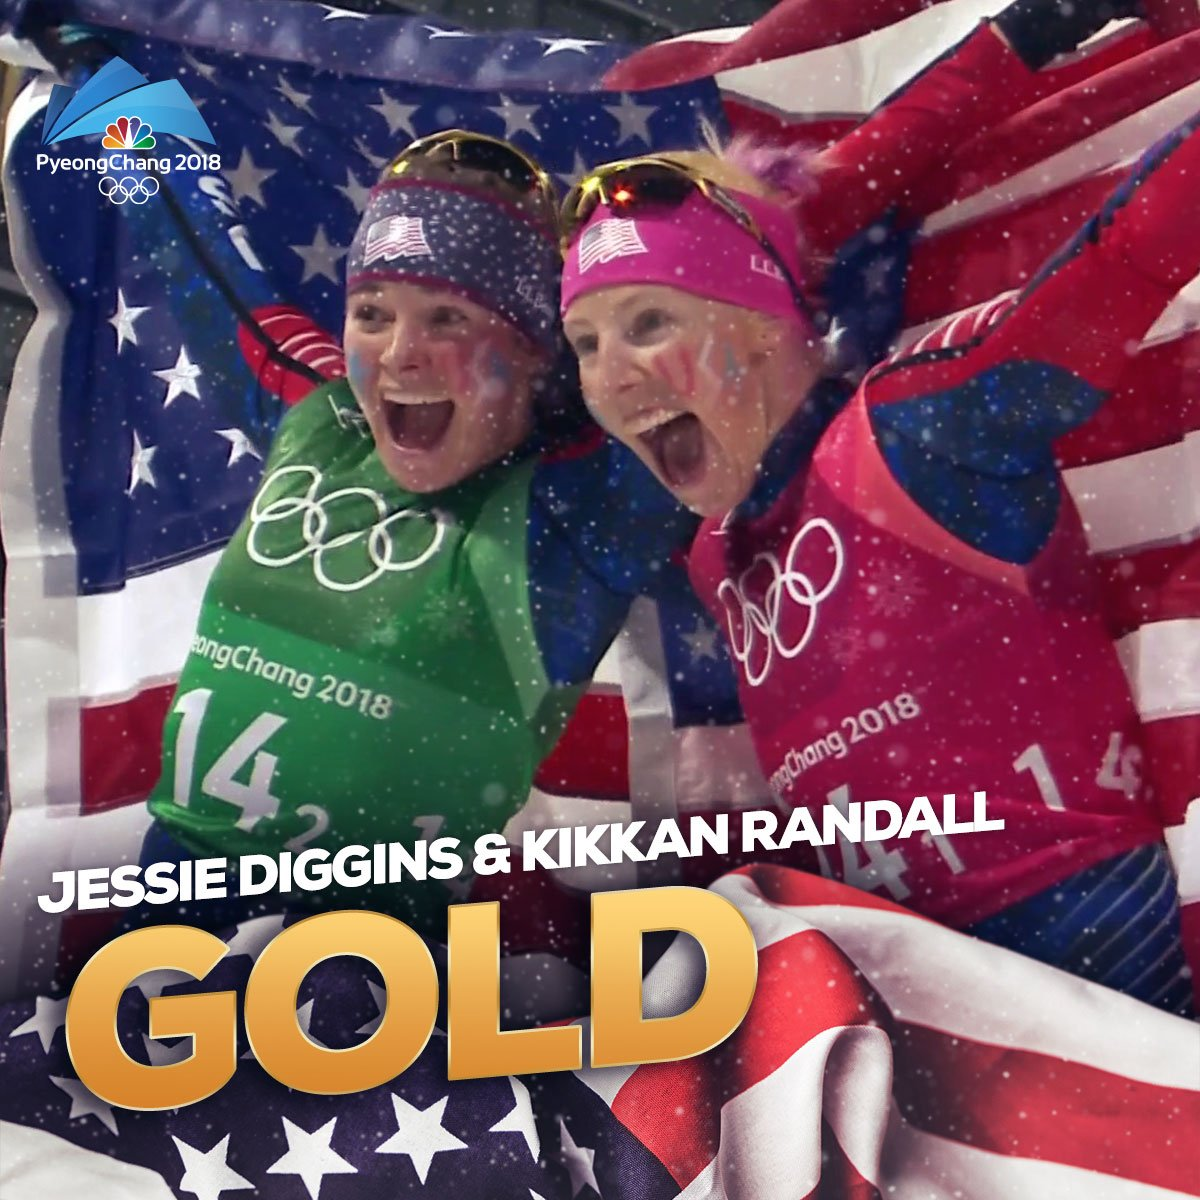 HISTORY MADE!   @jessdiggs and @kikkanimal are the first American cross-country skiers to capture a #gold medal after winning the women's team sprint! #WinterOlympics